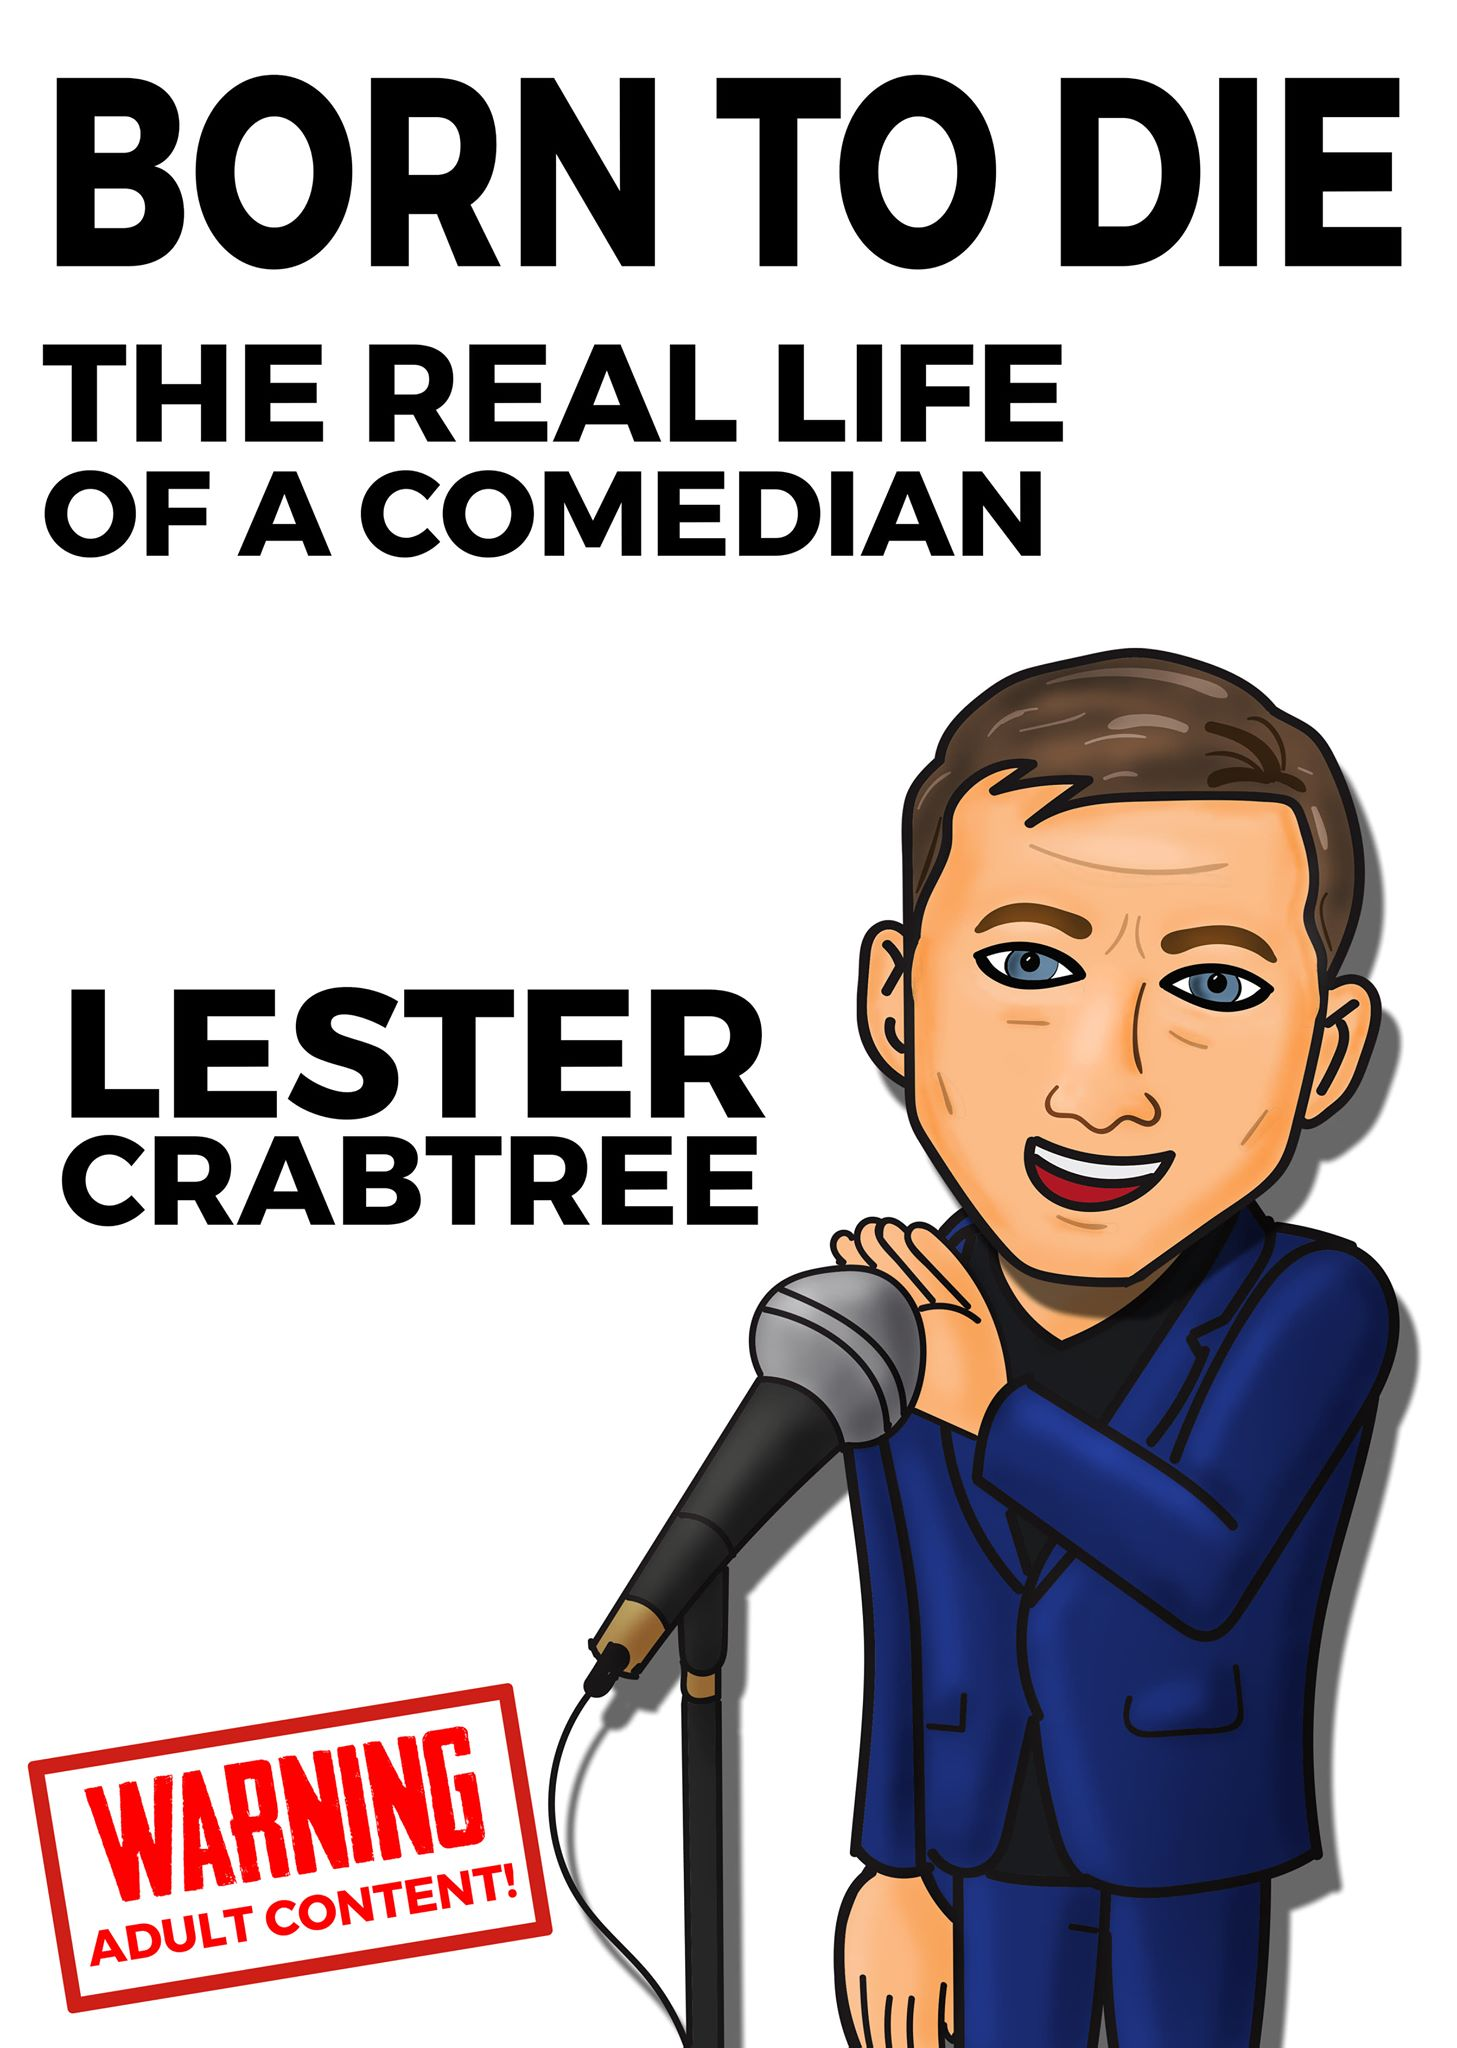 Born to Die - The Real Life of a Comedian Lester Crabtree